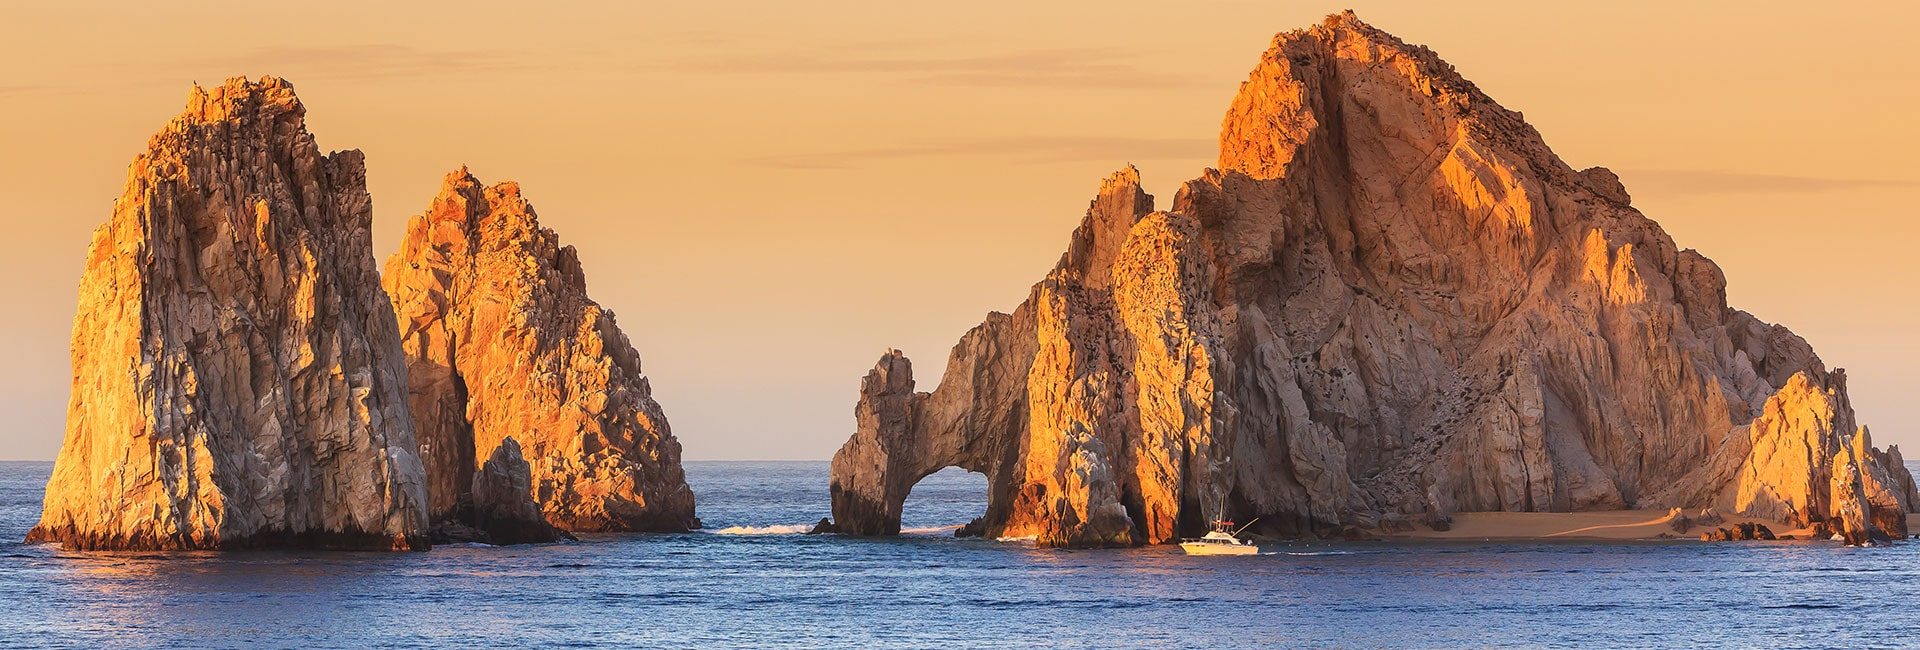 Cabo san lucas mexico travel restrictions 2021